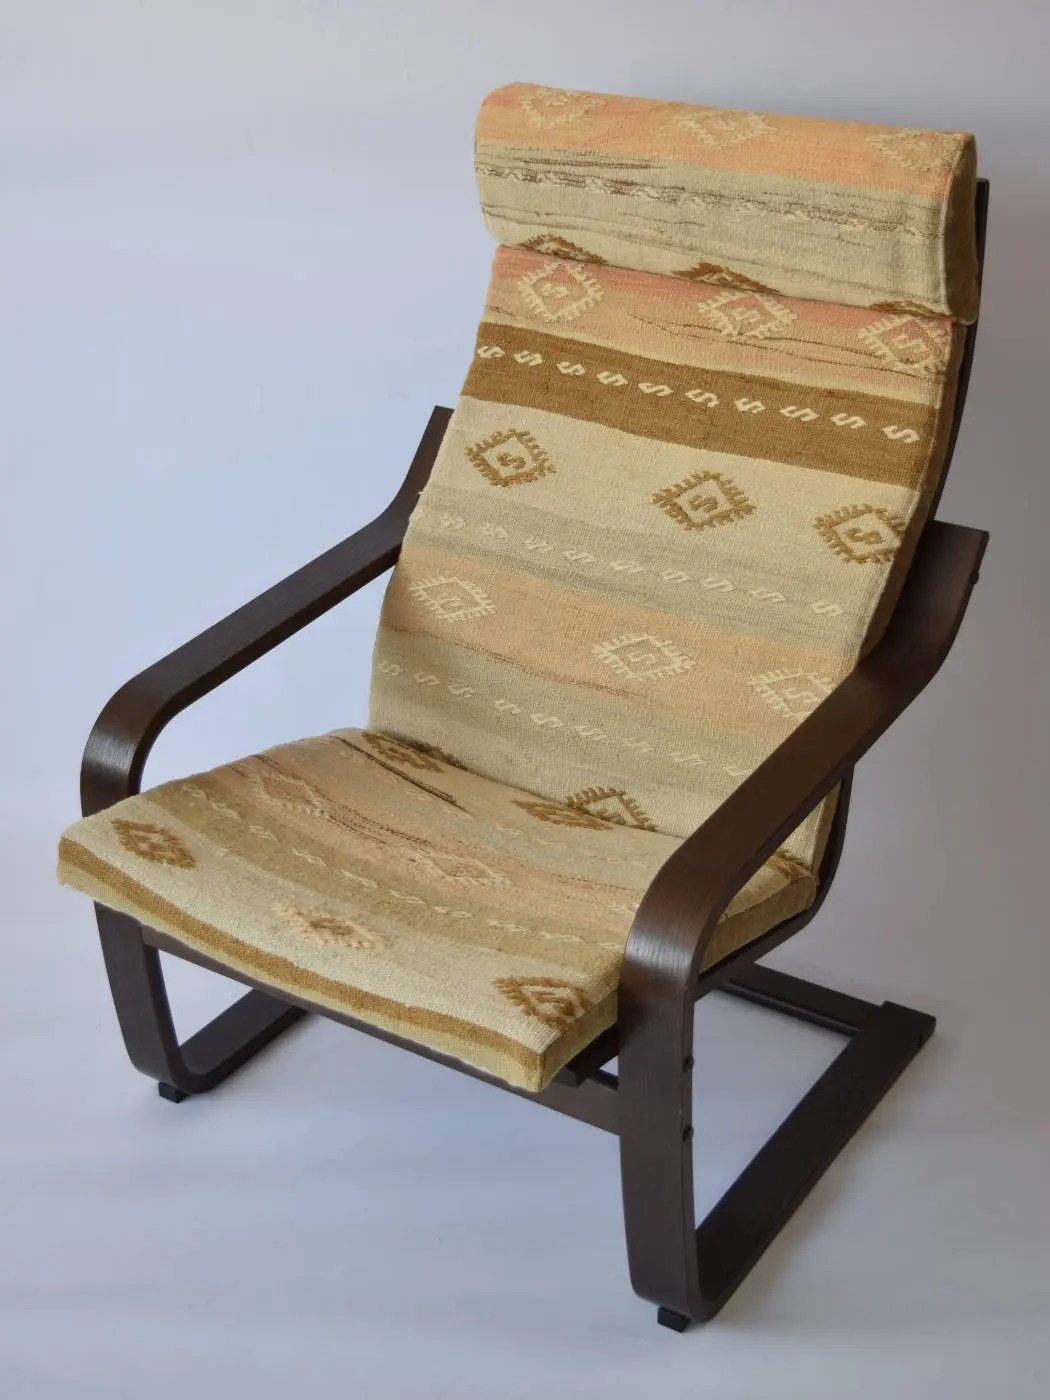 Sensational Used Ikea Poang Chair Facingwalls Unemploymentrelief Wooden Chair Designs For Living Room Unemploymentrelieforg